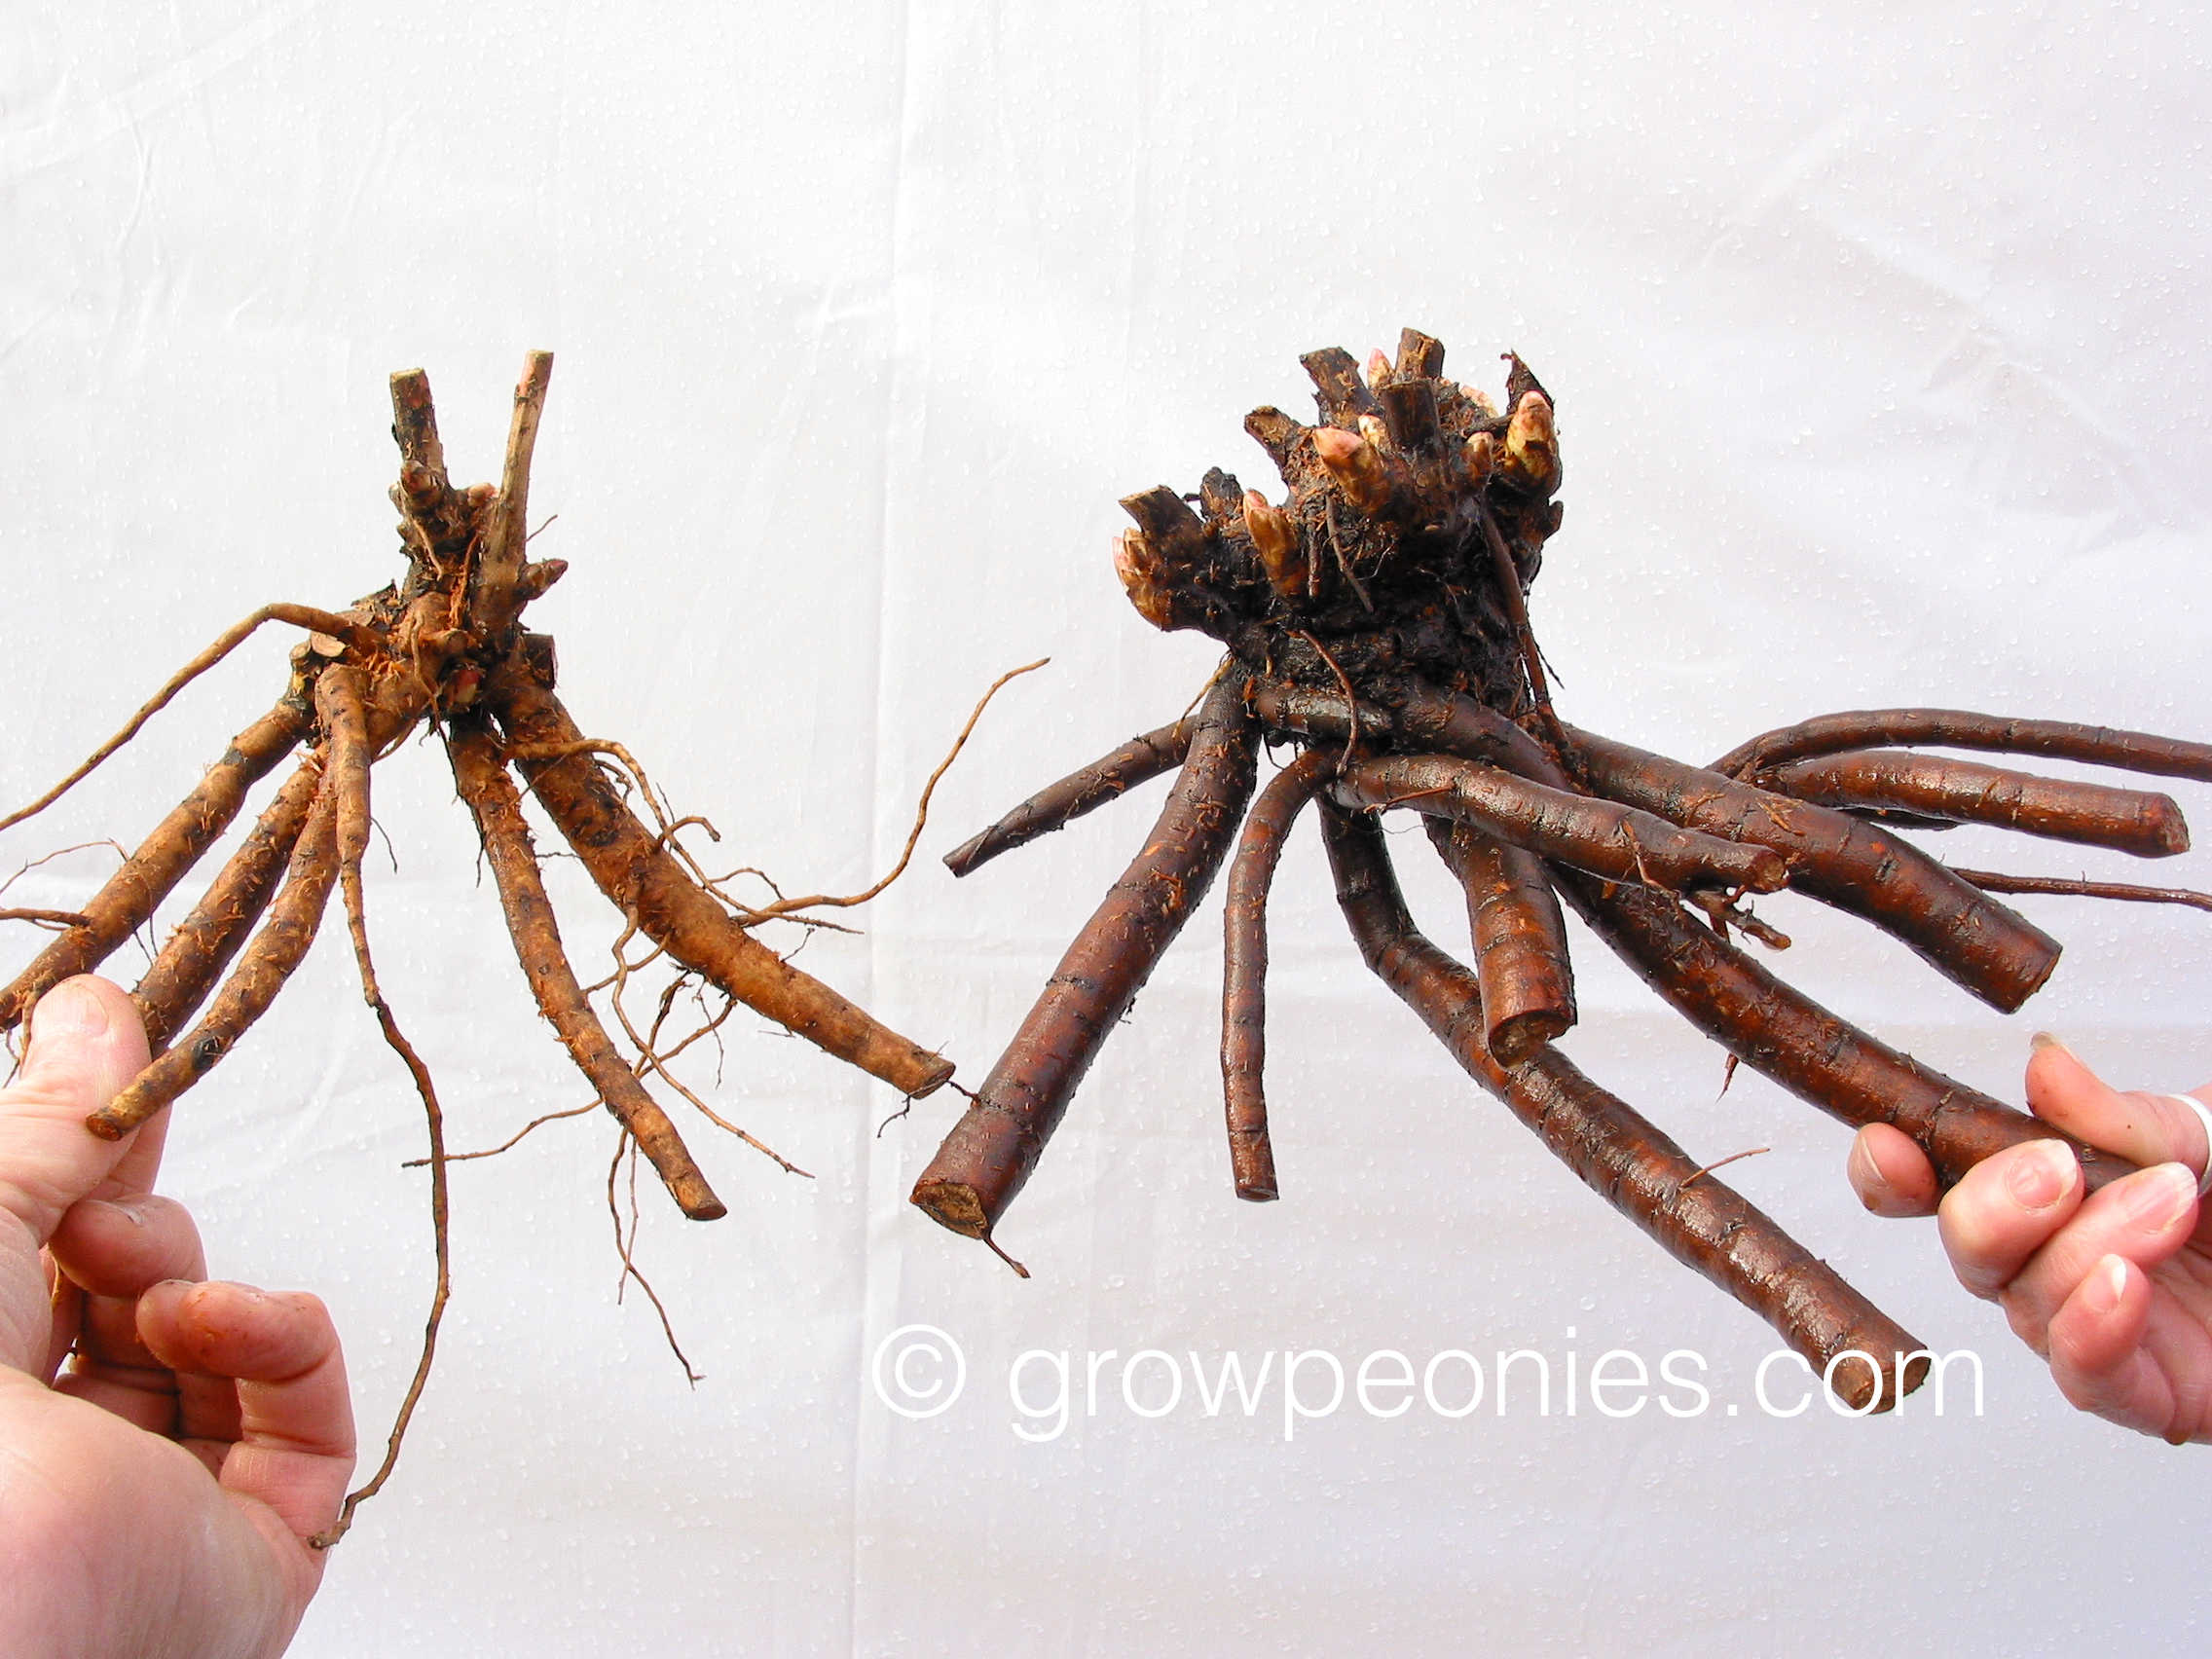 Which root has the greater capacity to produce a bloom the first season?